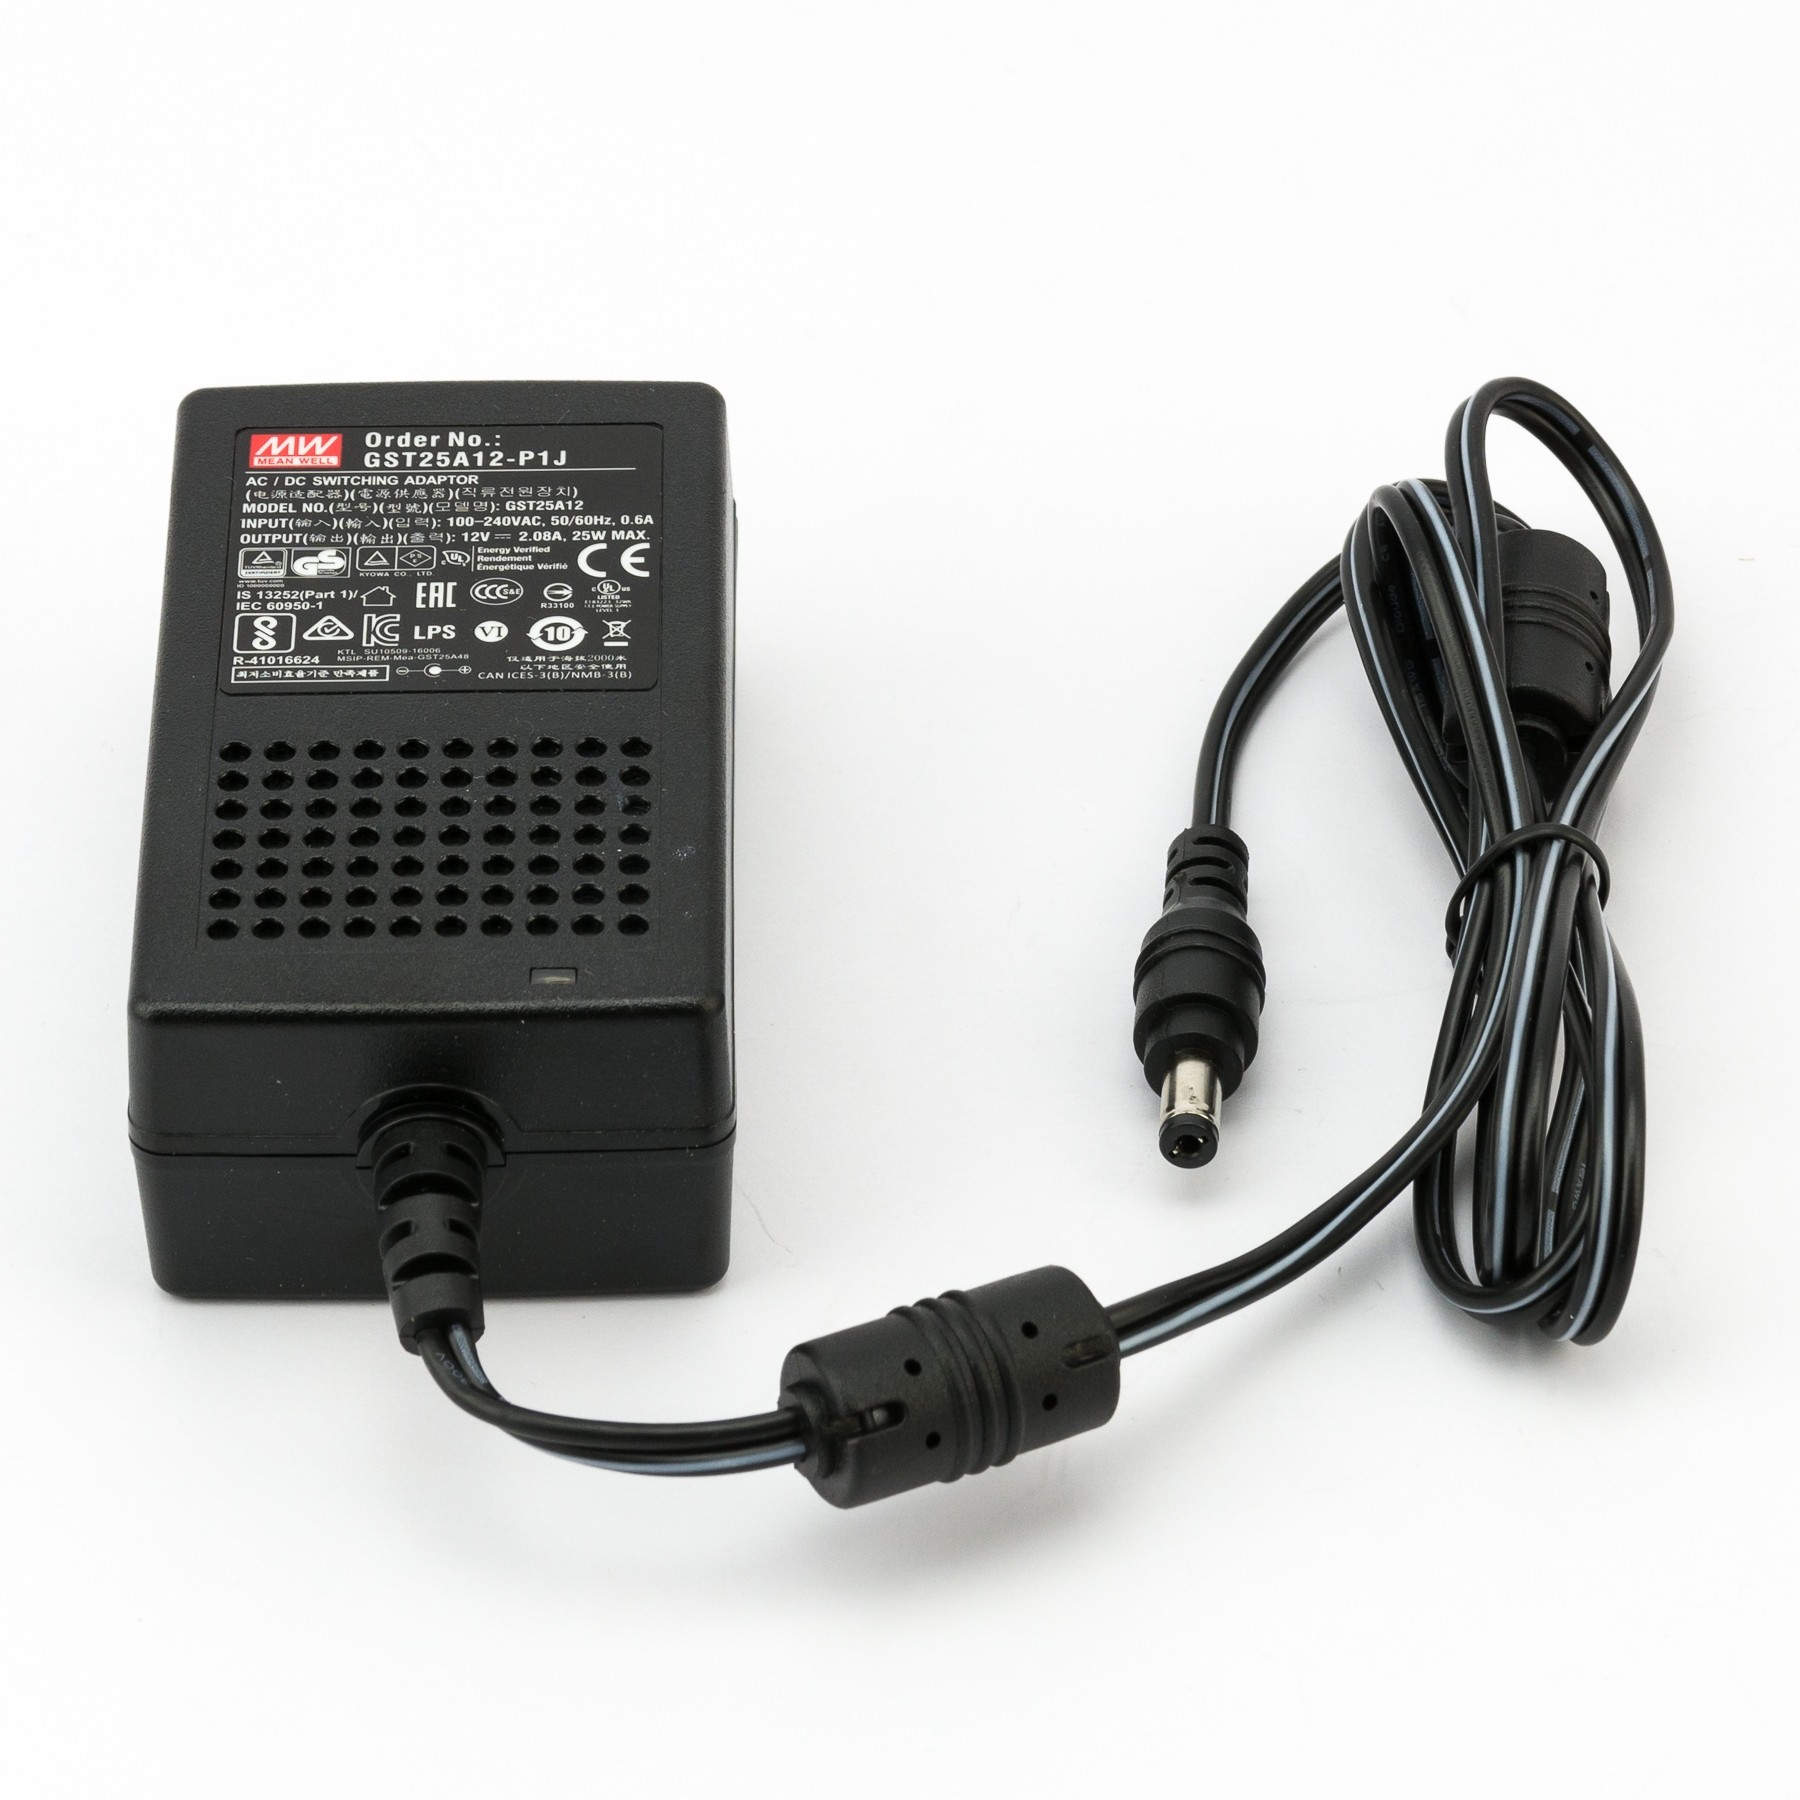 Power Supply 12V - 2.08A (GST25A12-P1J)